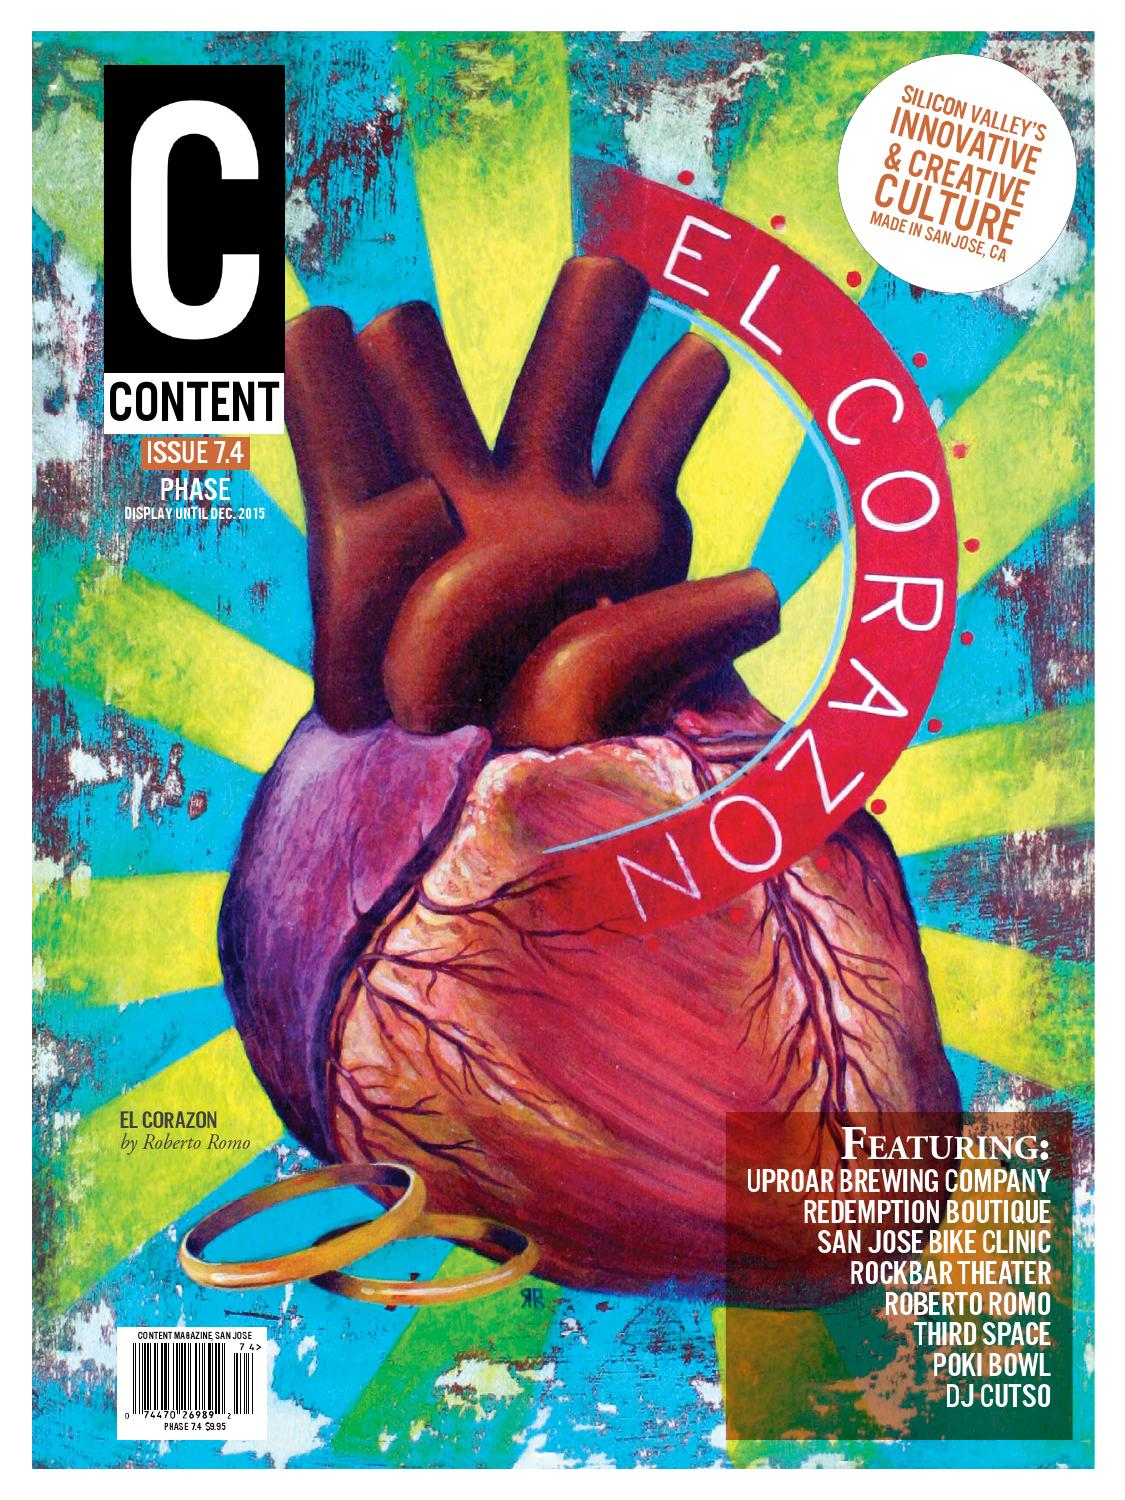 Phase 74 By Content Magazine Issuu Series Circuit Wchaverri39s Blog